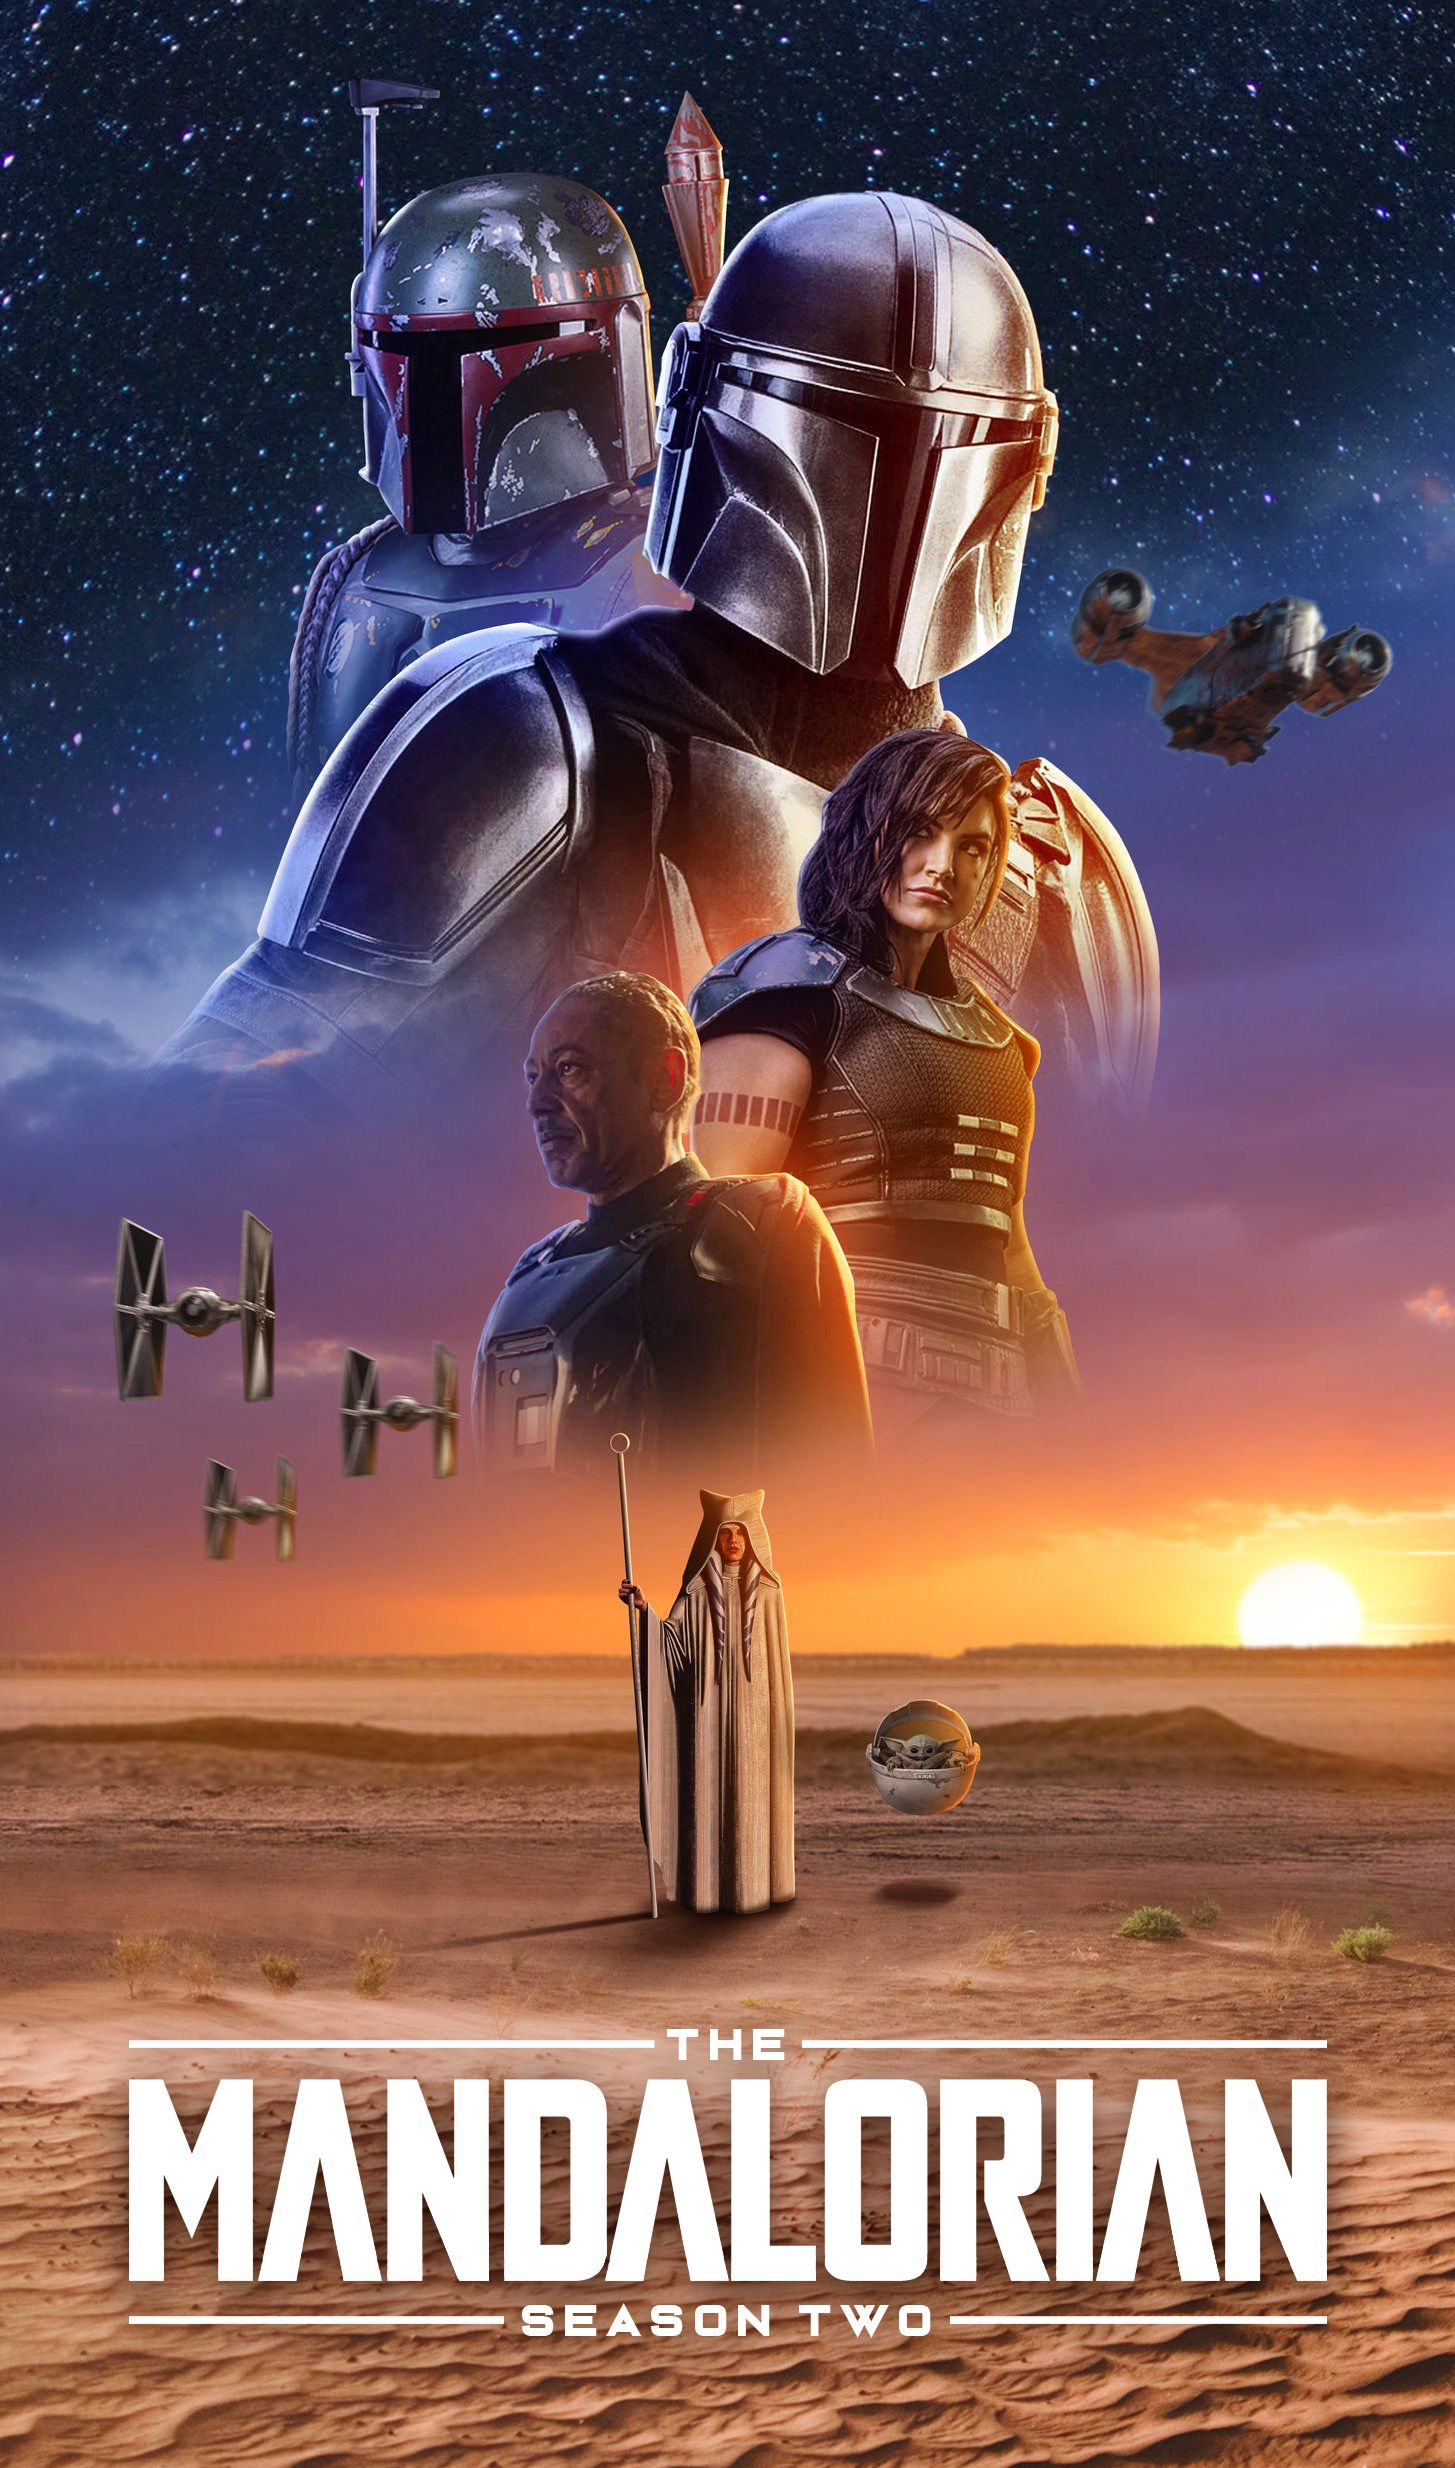 The Mandalorian Season 2 In 2020 Star Wars History Star Wars Pictures Star Wars Images